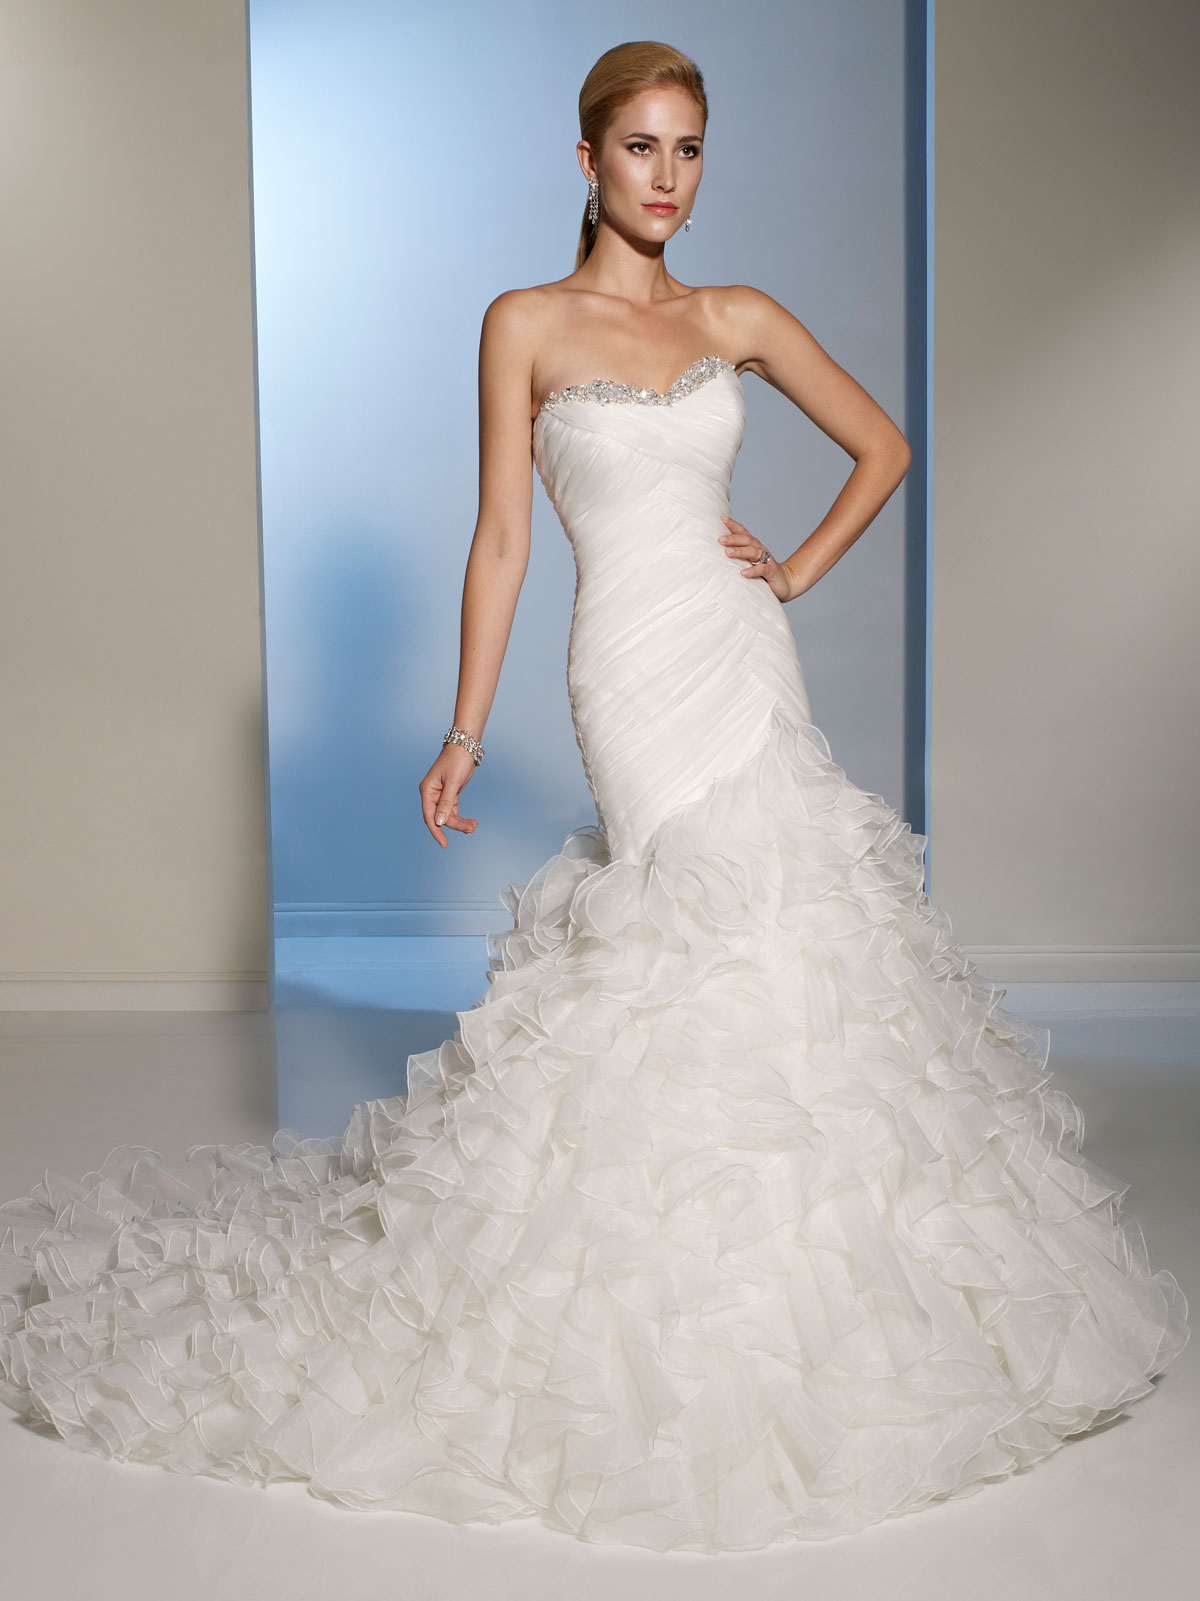 Organza Fit and flare wedding dresses.